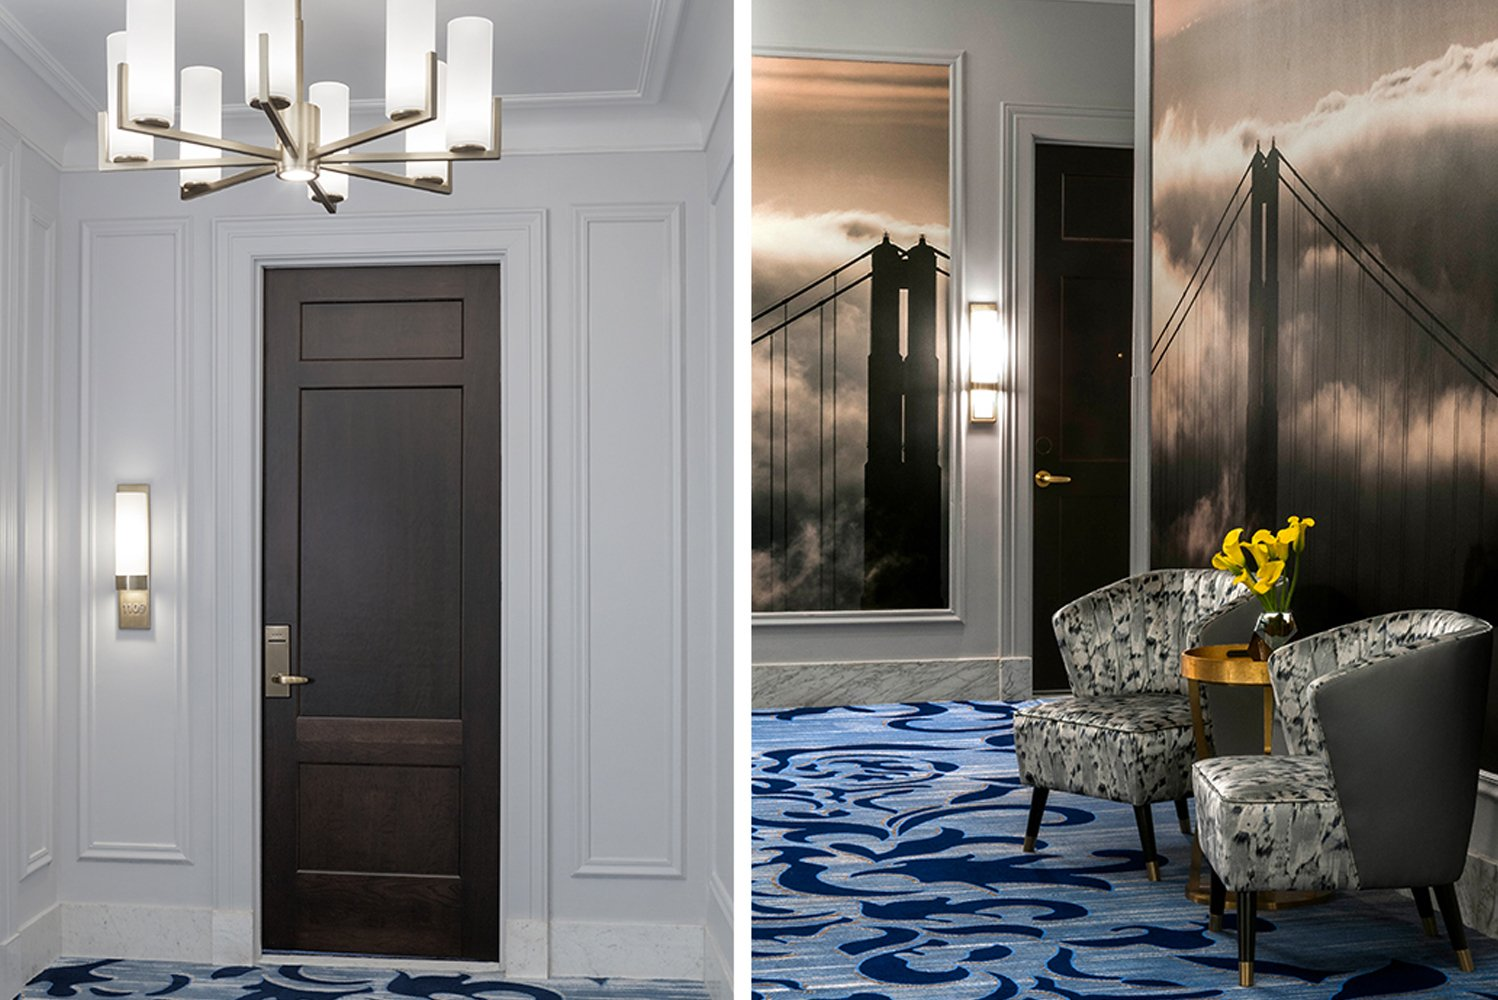 The renovation remained true to the look and architecture of this 1904 destination hotel.